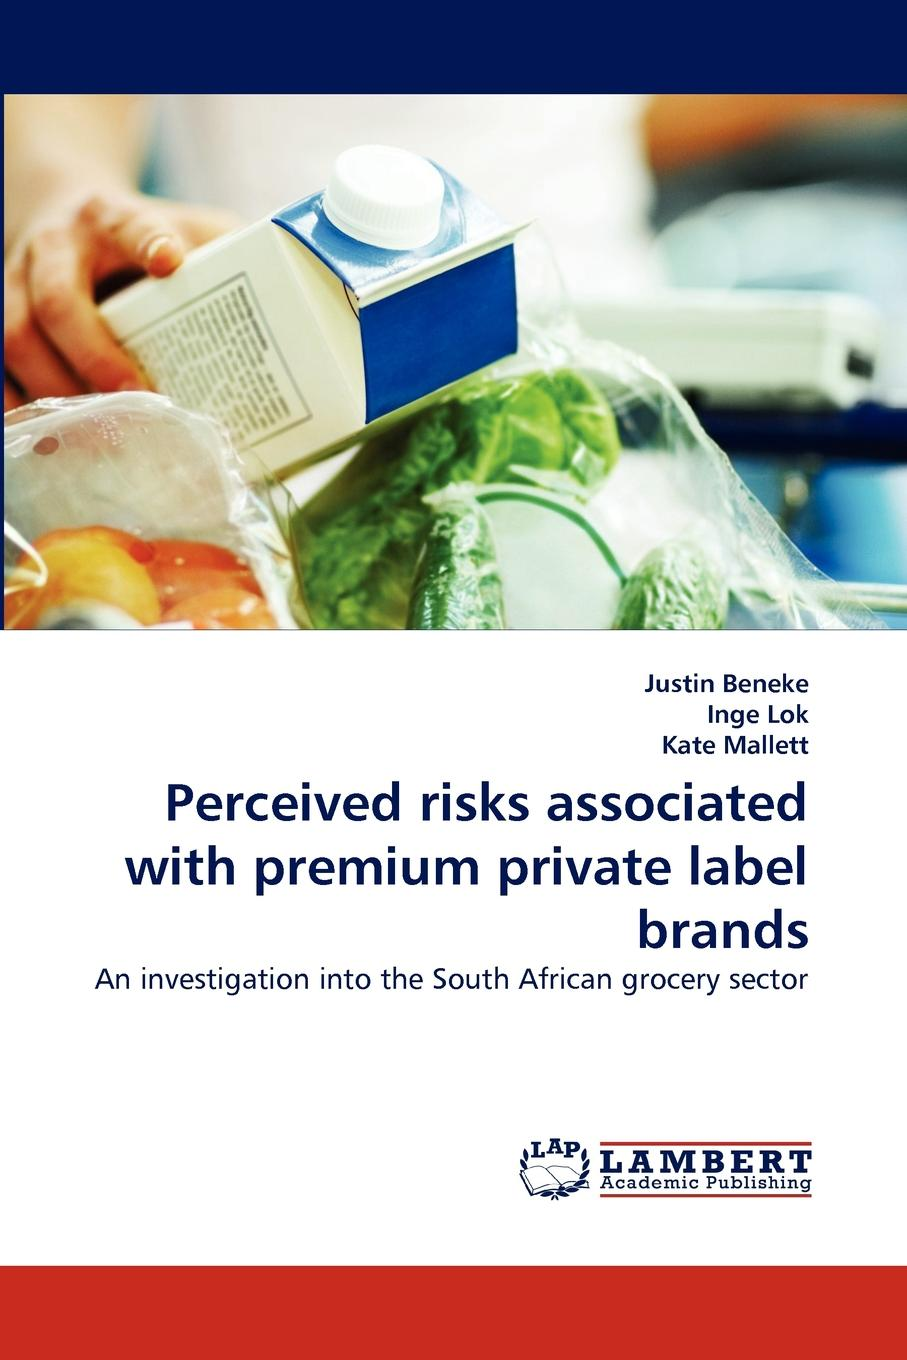 Justin Beneke, Inge Lok, Kate Mallett Perceived Risks Associated with Premium Private Label Brands chai har lee and uchenna cyril eze consumers' perception on online repurchase intention